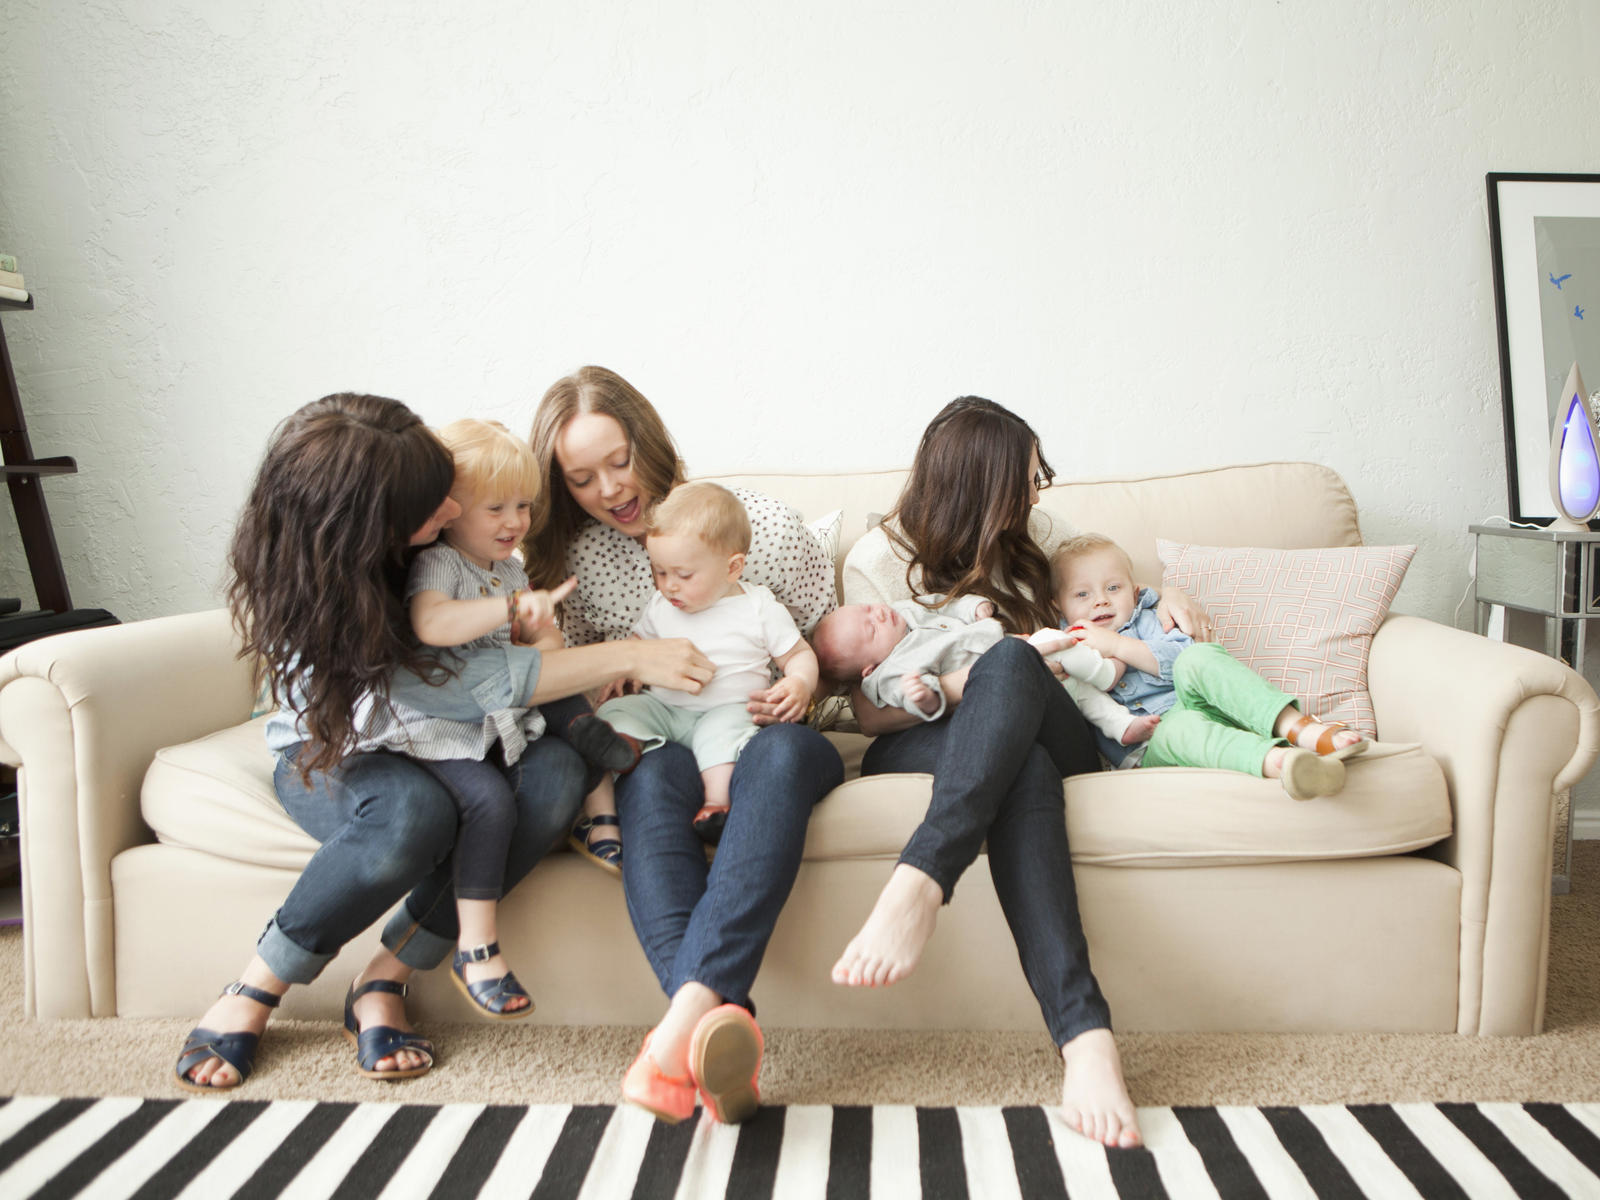 Moms and Kids on Couch